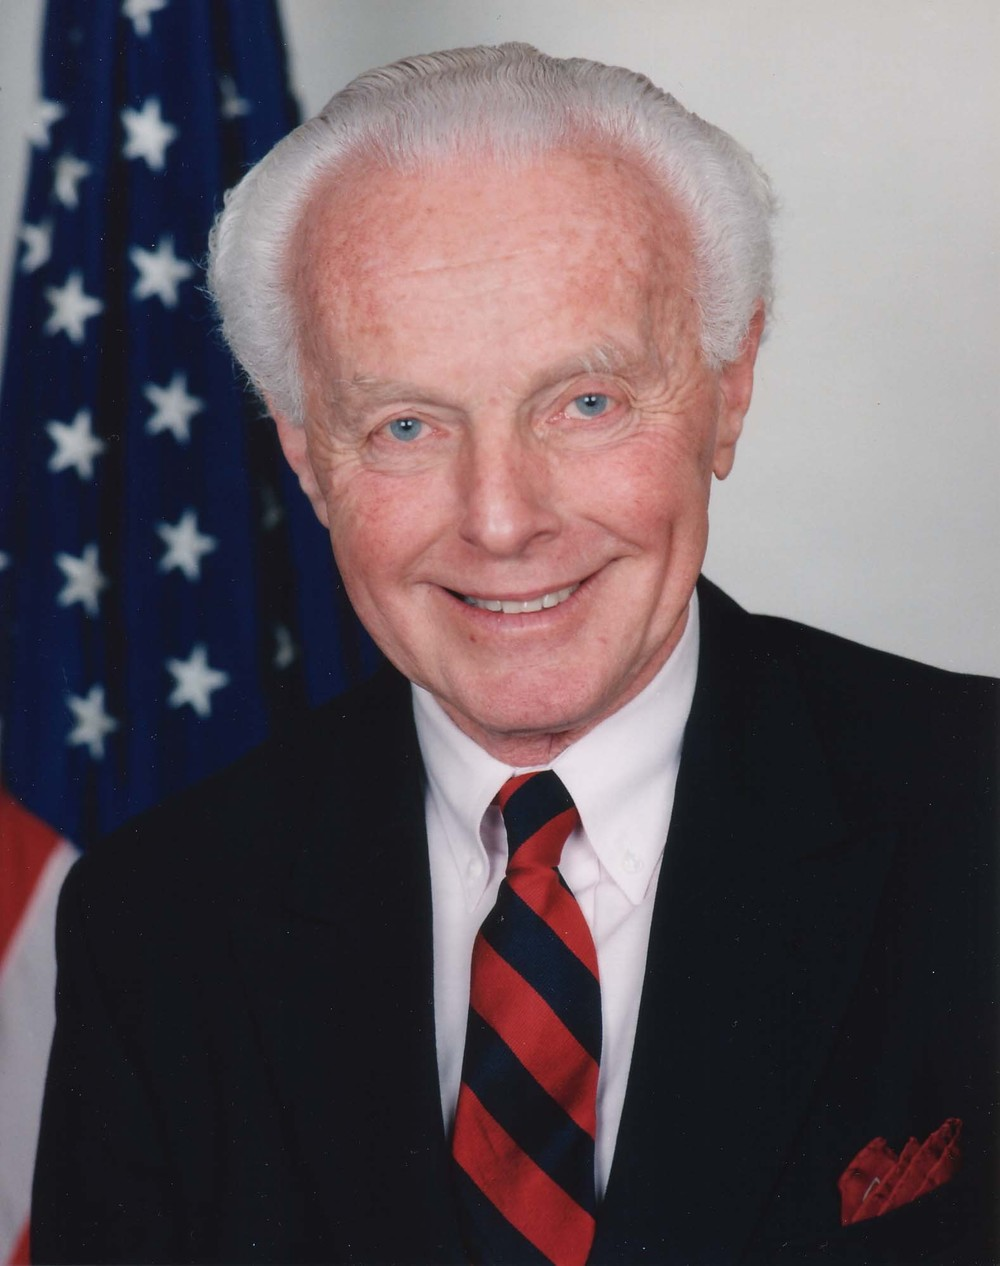 The late Congressman Tom Lantos. Credit: U.S. Congress.